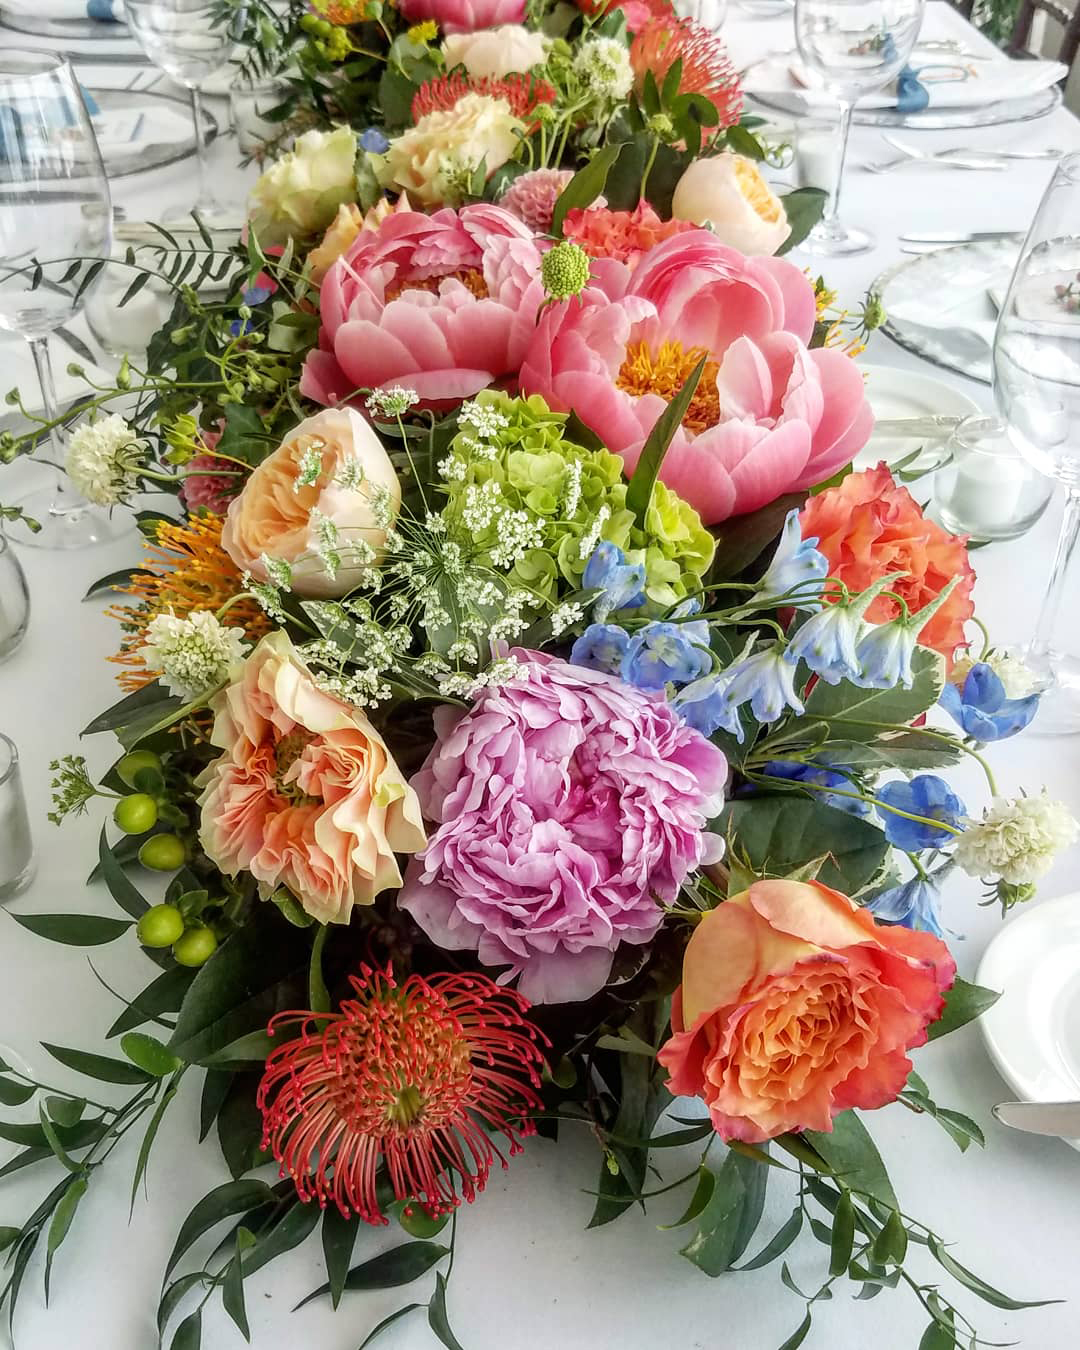 instagram_wedding_photos_flowers_centerpiece